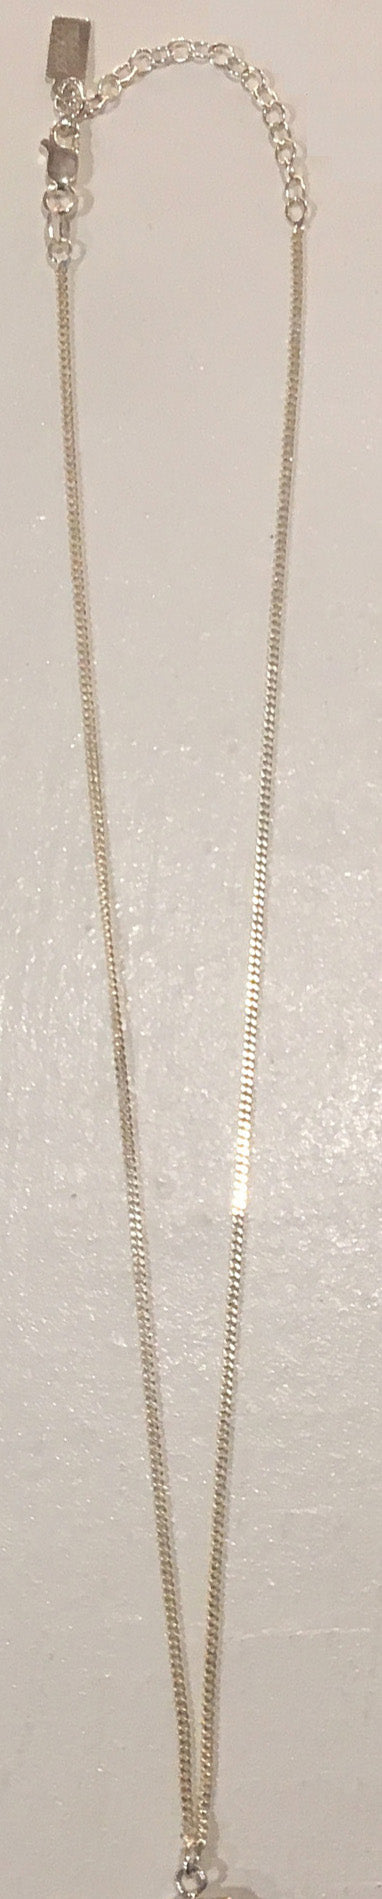 SC Baby Jewel Necklace